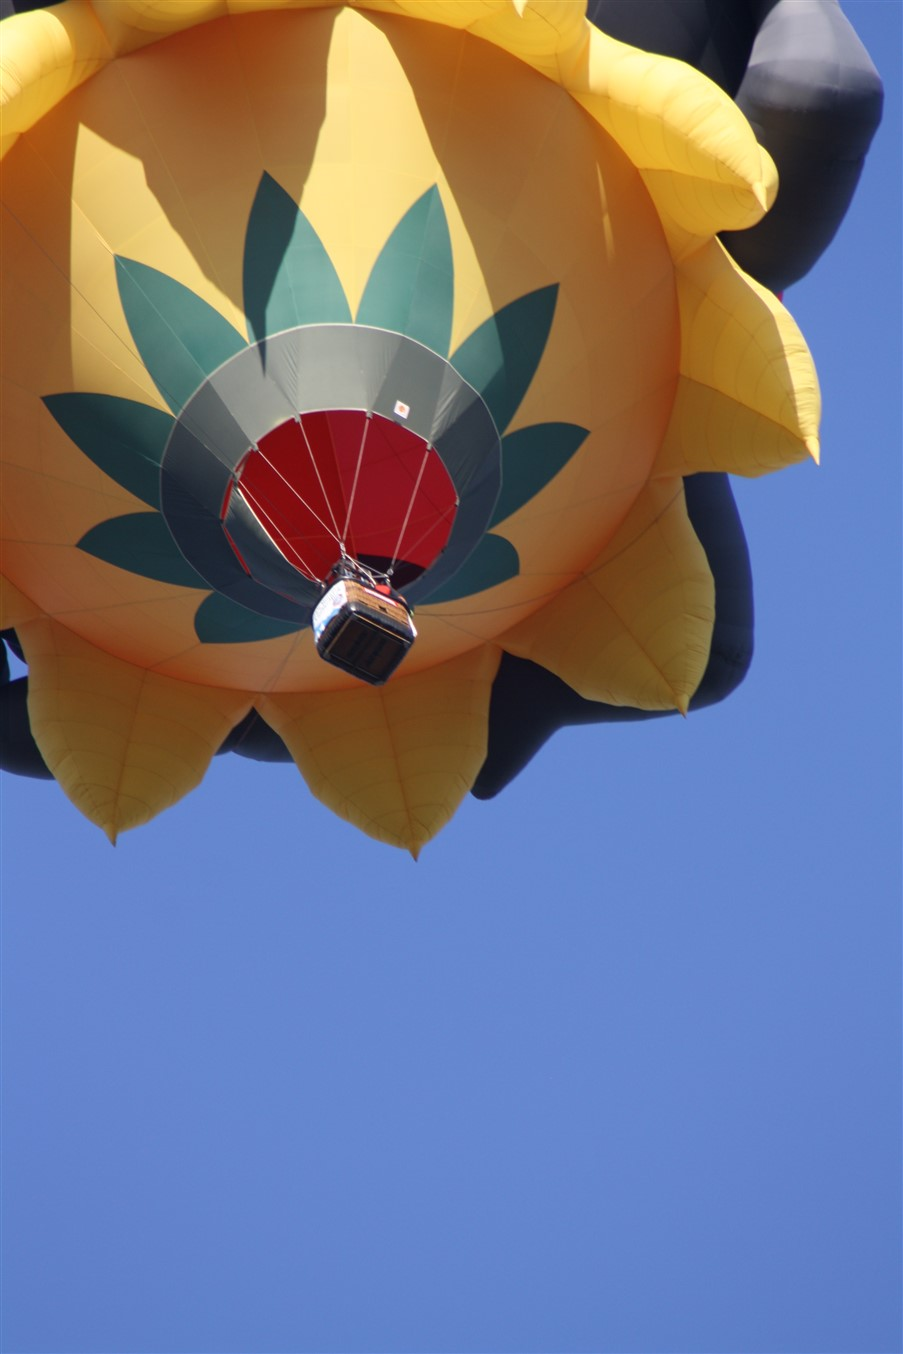 2011 07 30 Canton Hot Air Balloon Festival 17.jpg